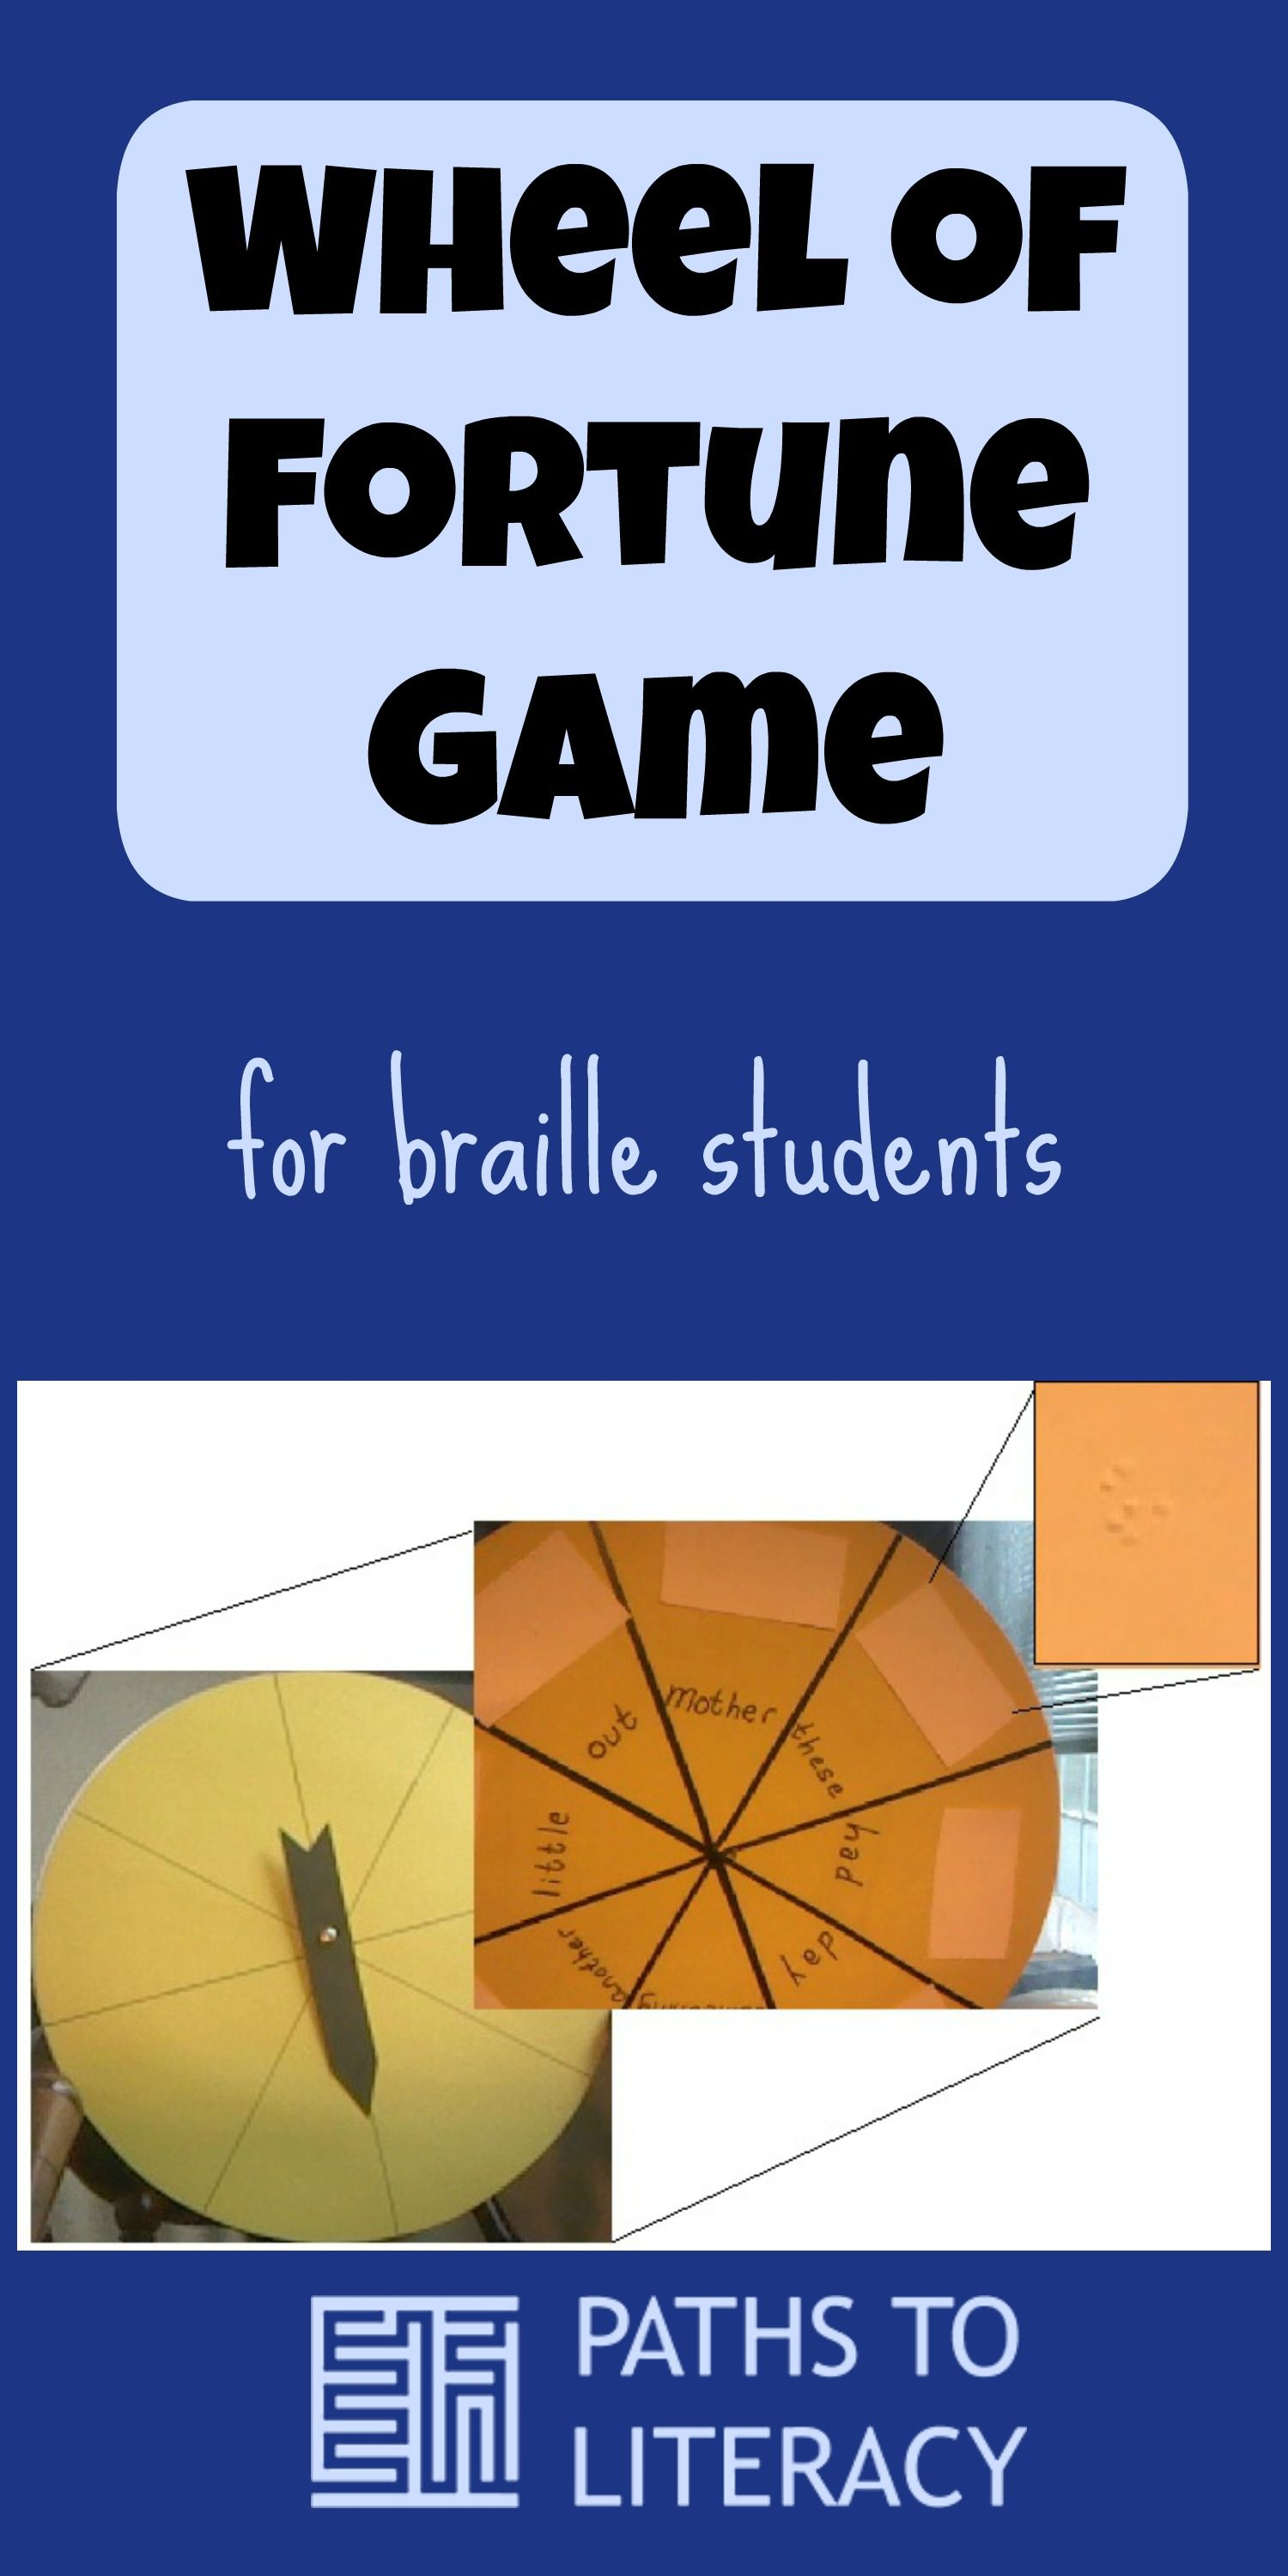 This Wheel of Fortune game for braille students can be